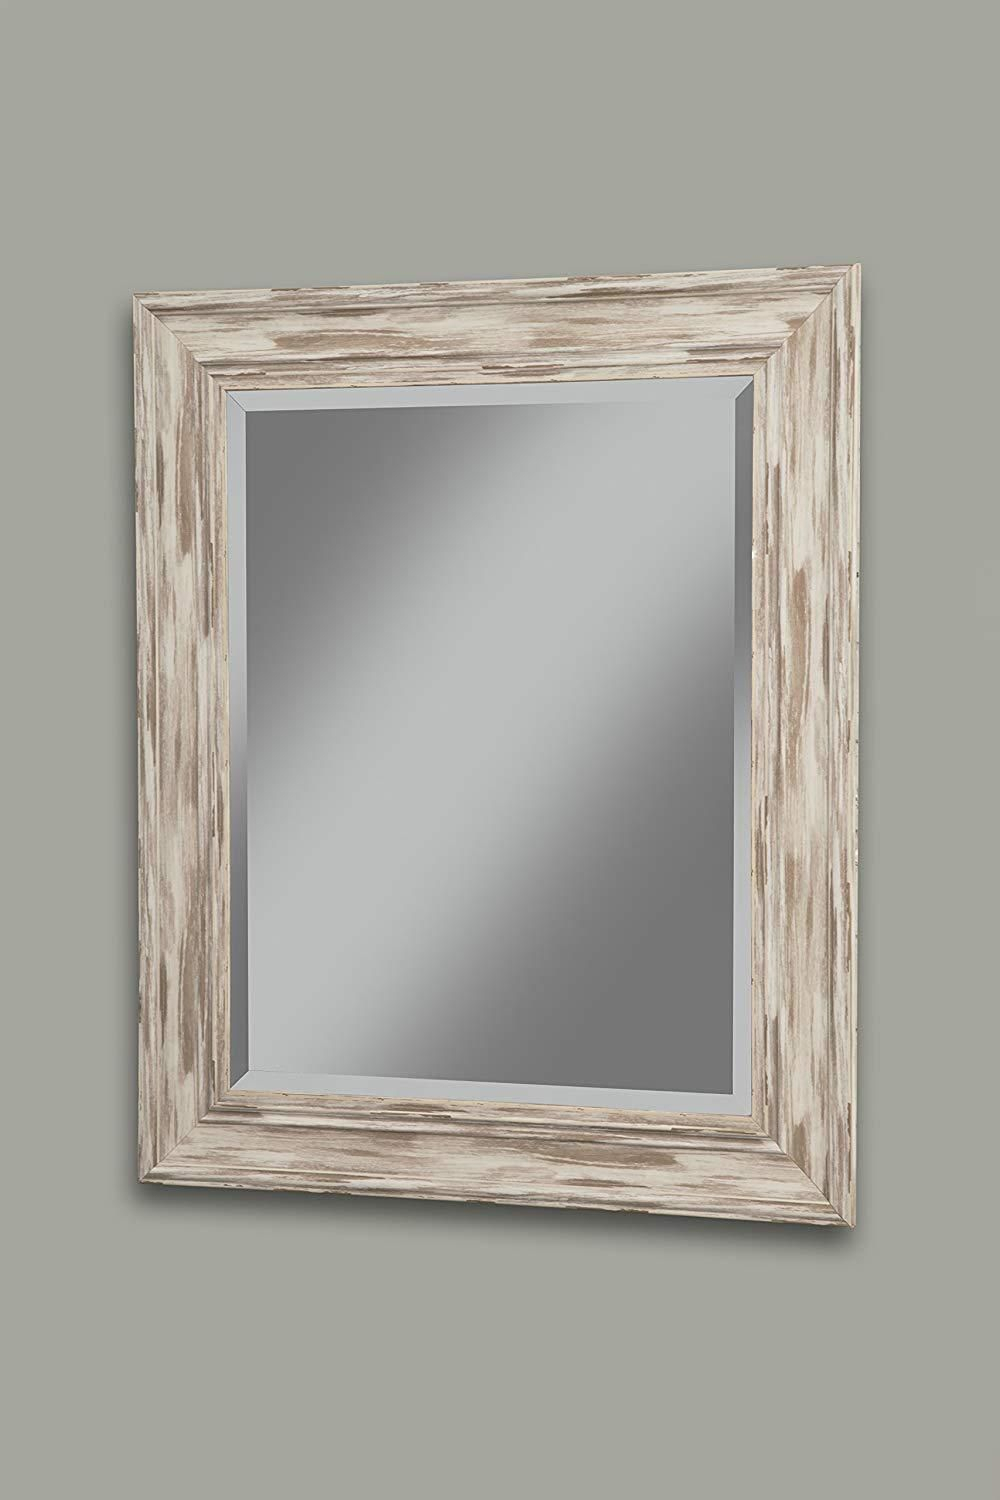 Polystyrene Framed Wall Mirror With Sharp Edges, Antique pertaining to Bartolo Accent Mirrors (Image 24 of 30)